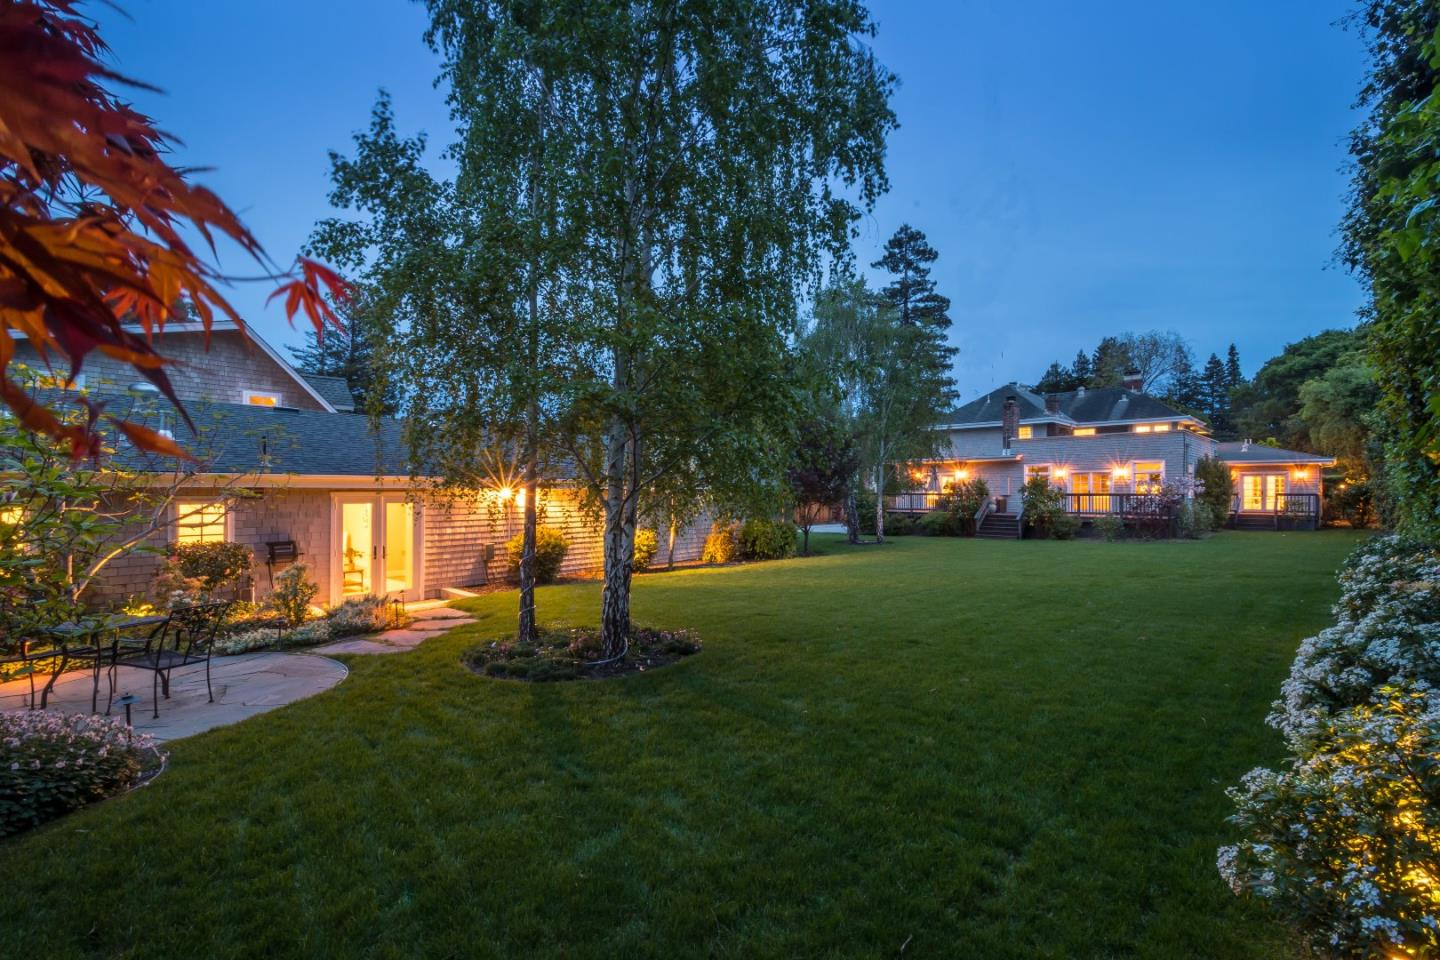 Additional photo for property listing at 146 W Bellevue Ave  SAN MATEO, CALIFORNIA 94402